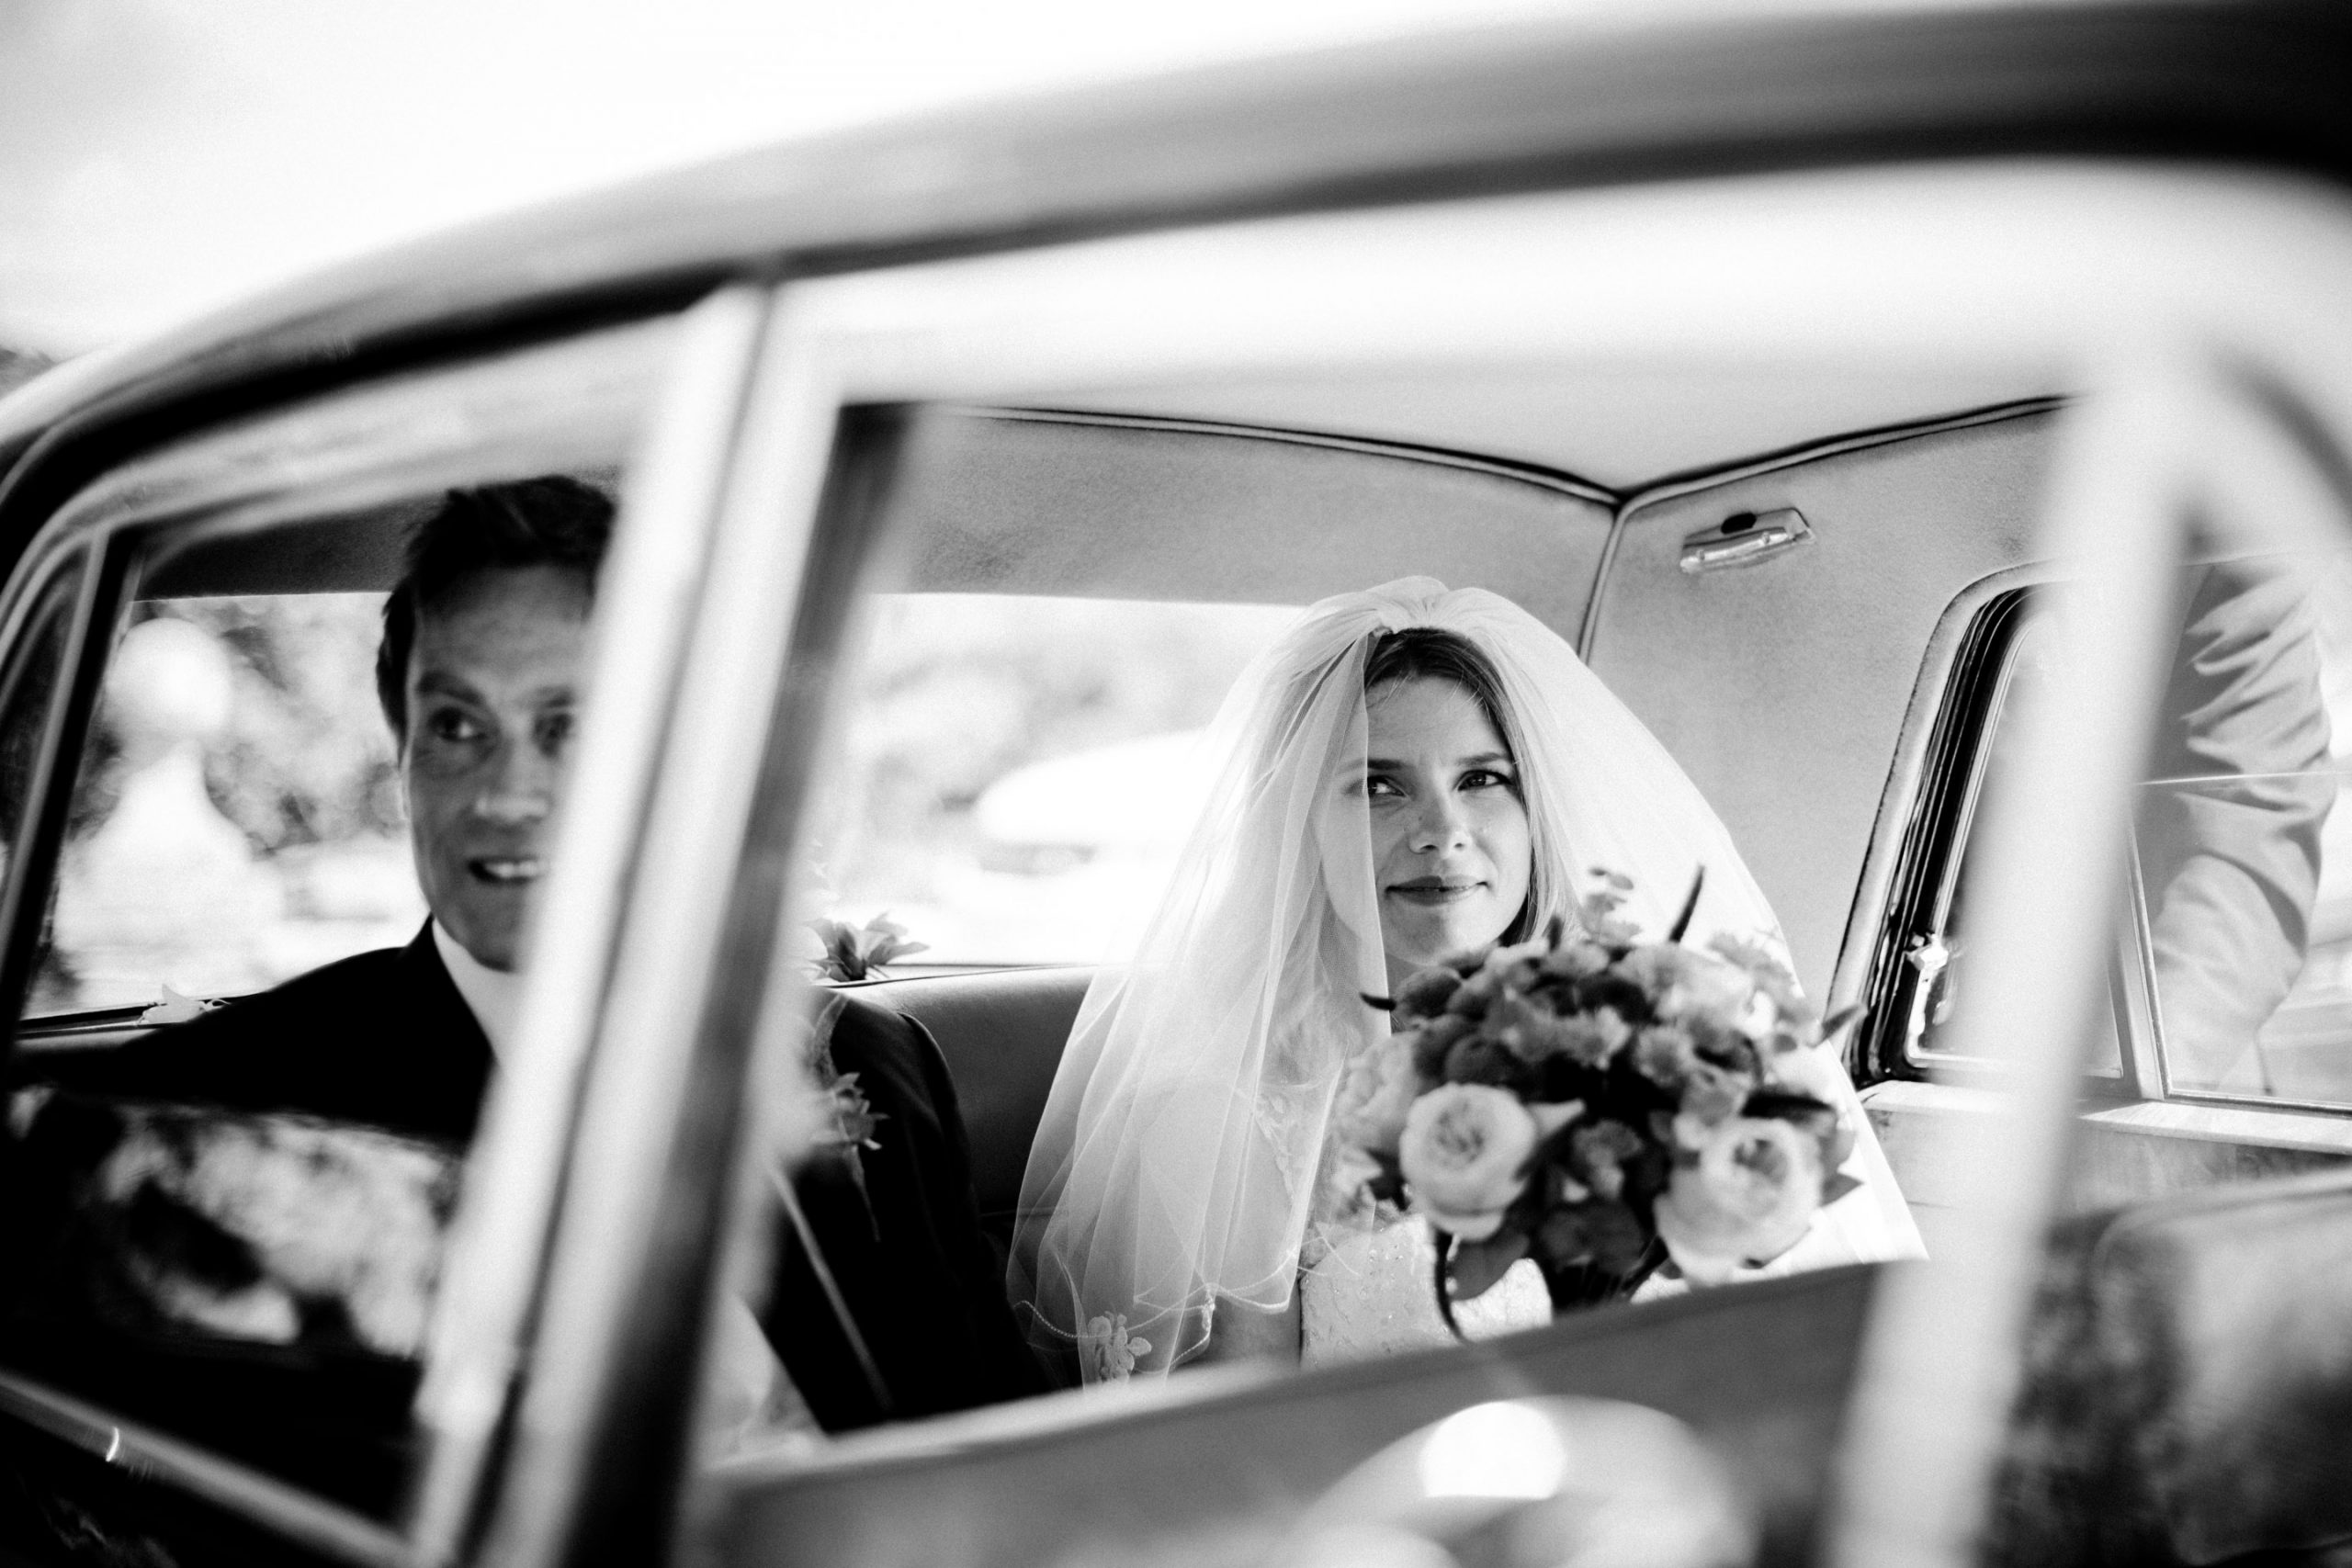 Helen & Kevin are seen through the window of their wedding car on their way from their Wembury wedding at St Werburgh's Church to their reception at the Langdon Court Hotel in Devon.